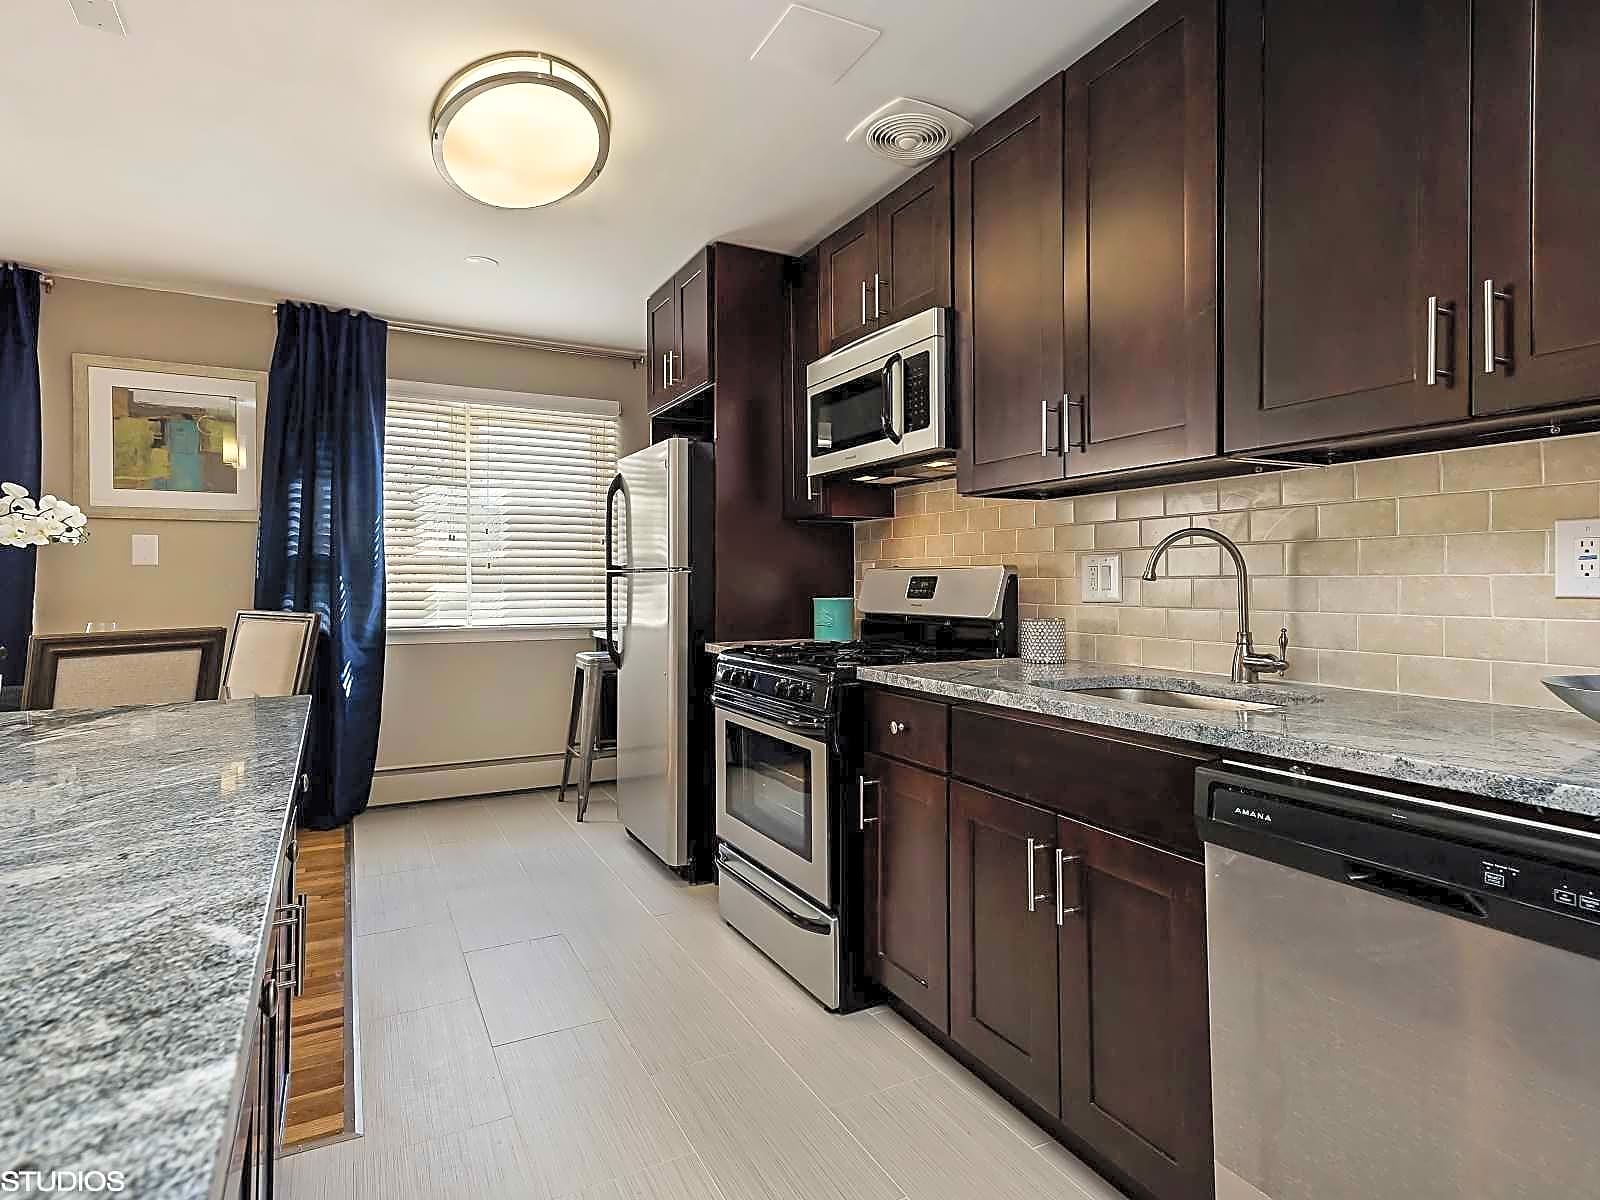 The crossings at menlo park apartments edison nj 08837 - 2 bedroom apartments in linden nj for 950 ...